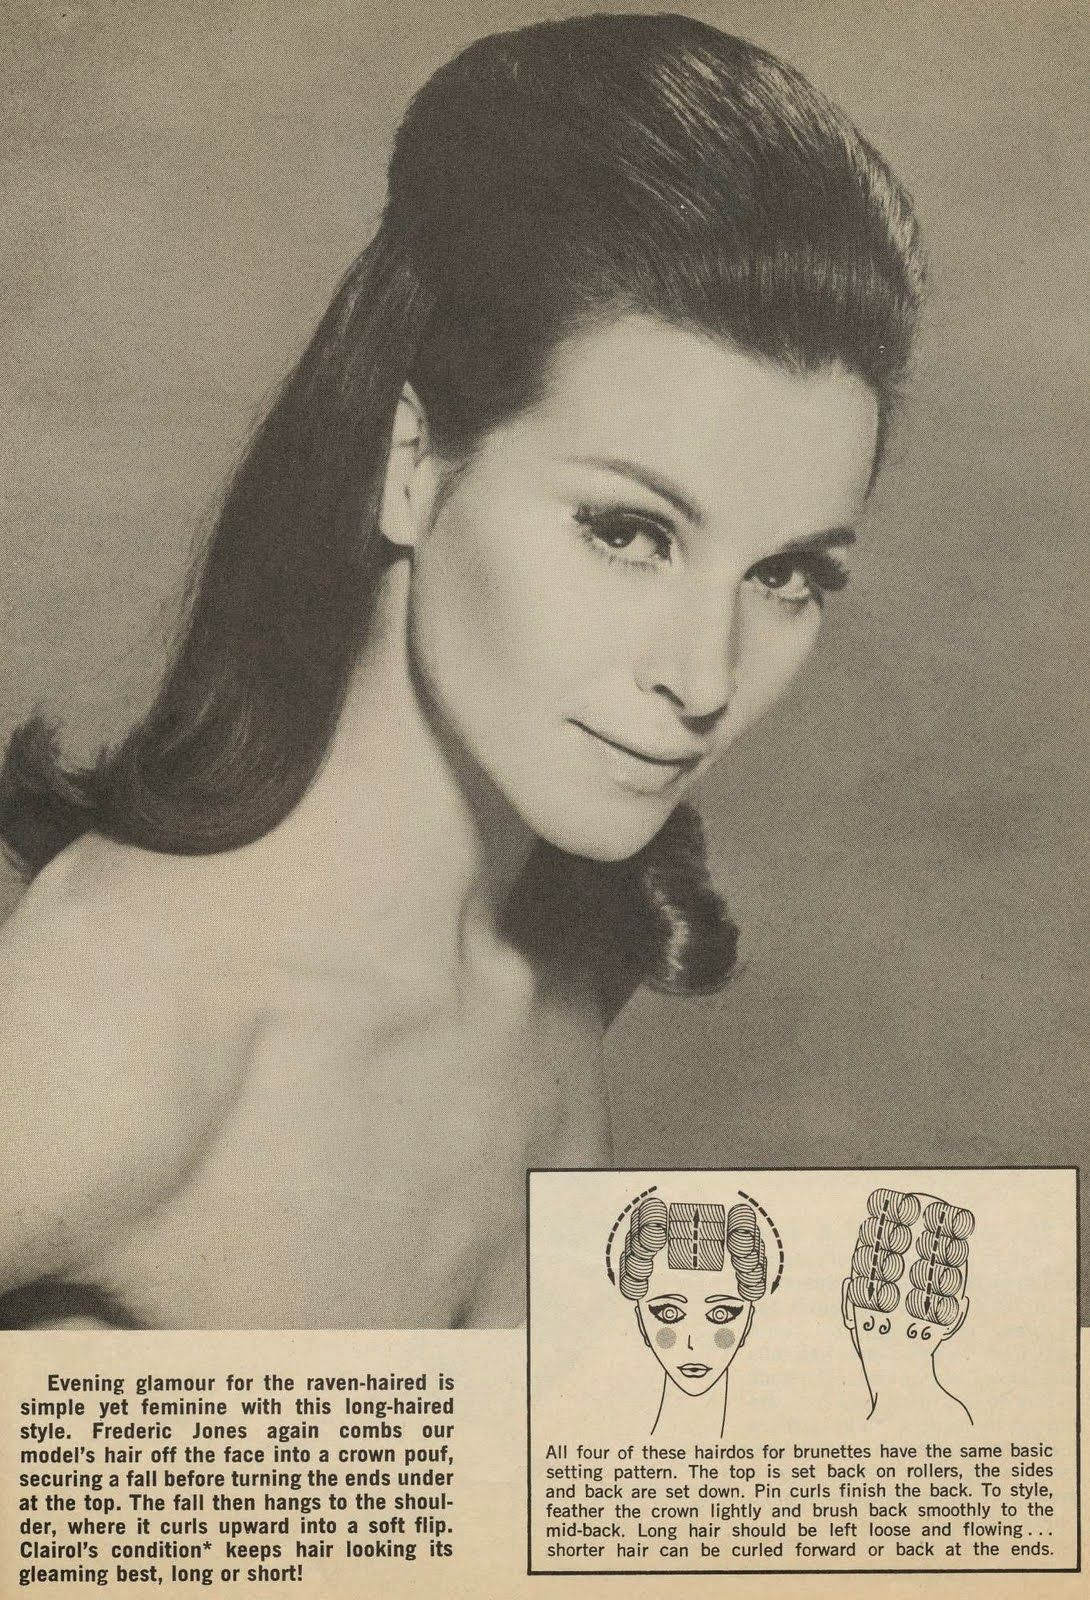 i just adore late 60s hairstyles, so i am really excited to